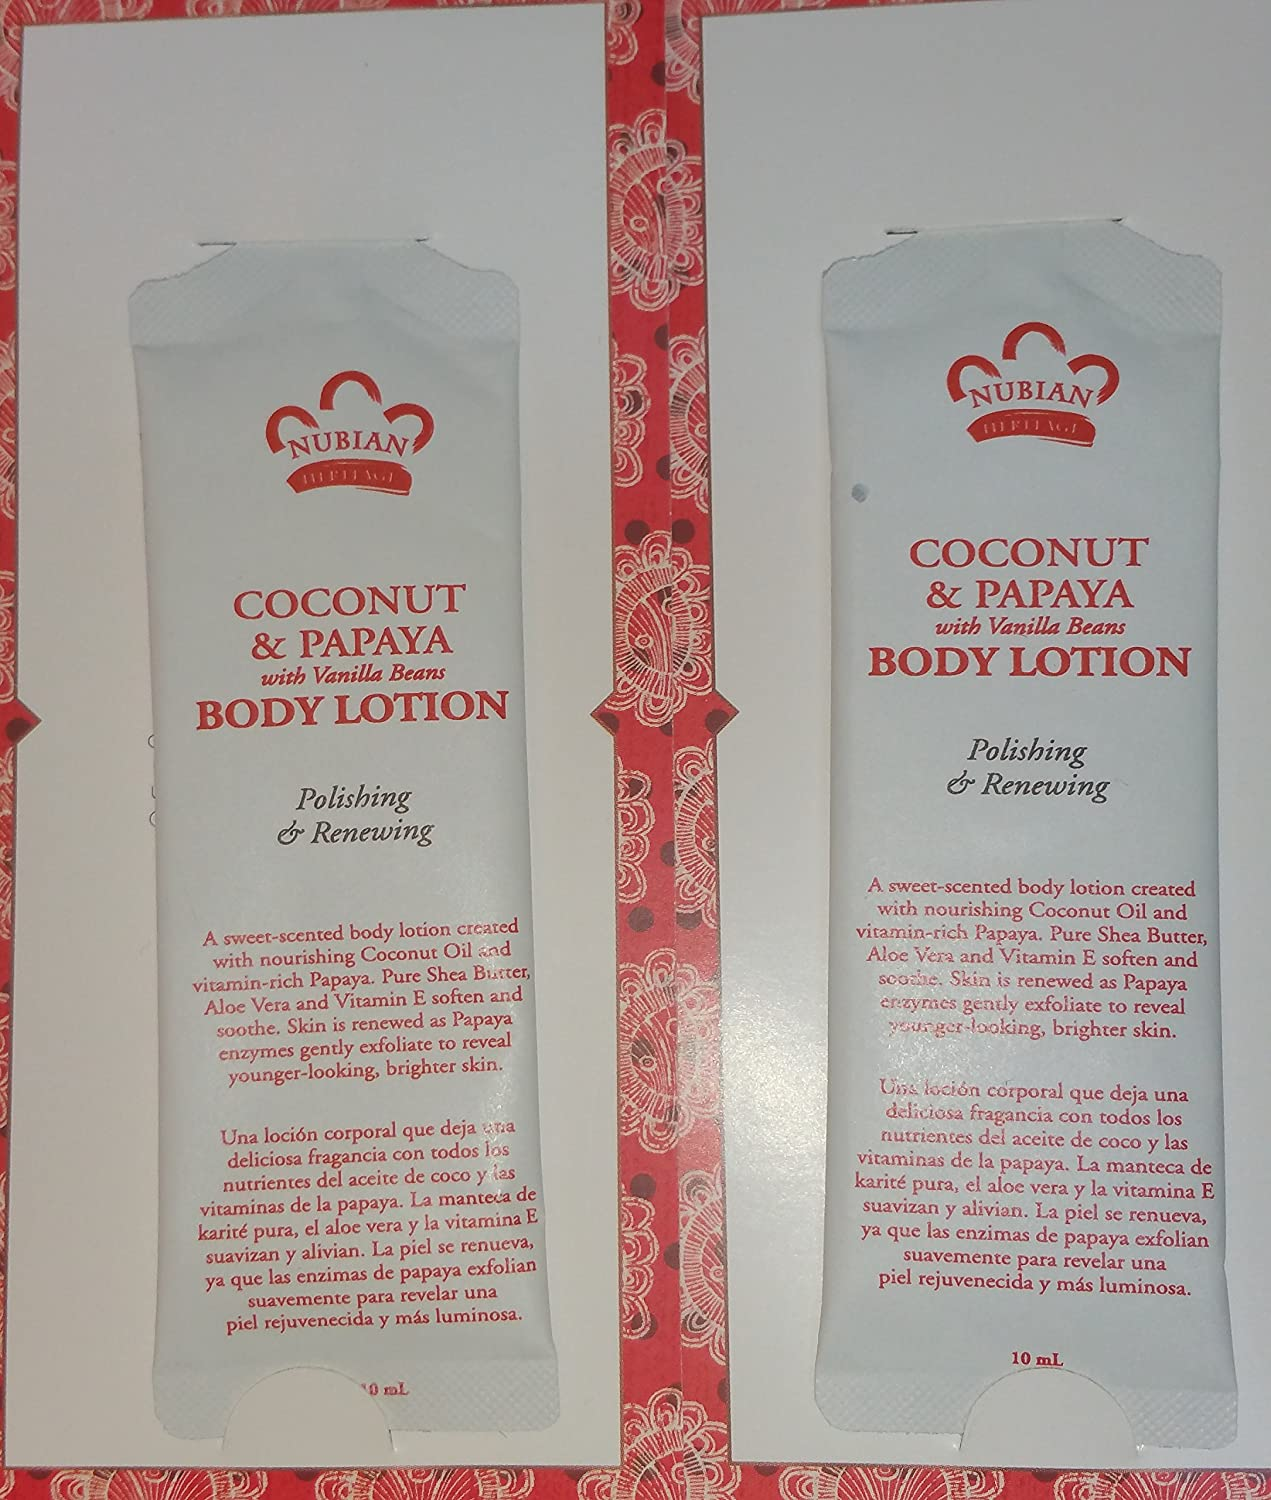 Amazon.com : 2 Nubian Coconut & Papaya Body Lotion Samples ...